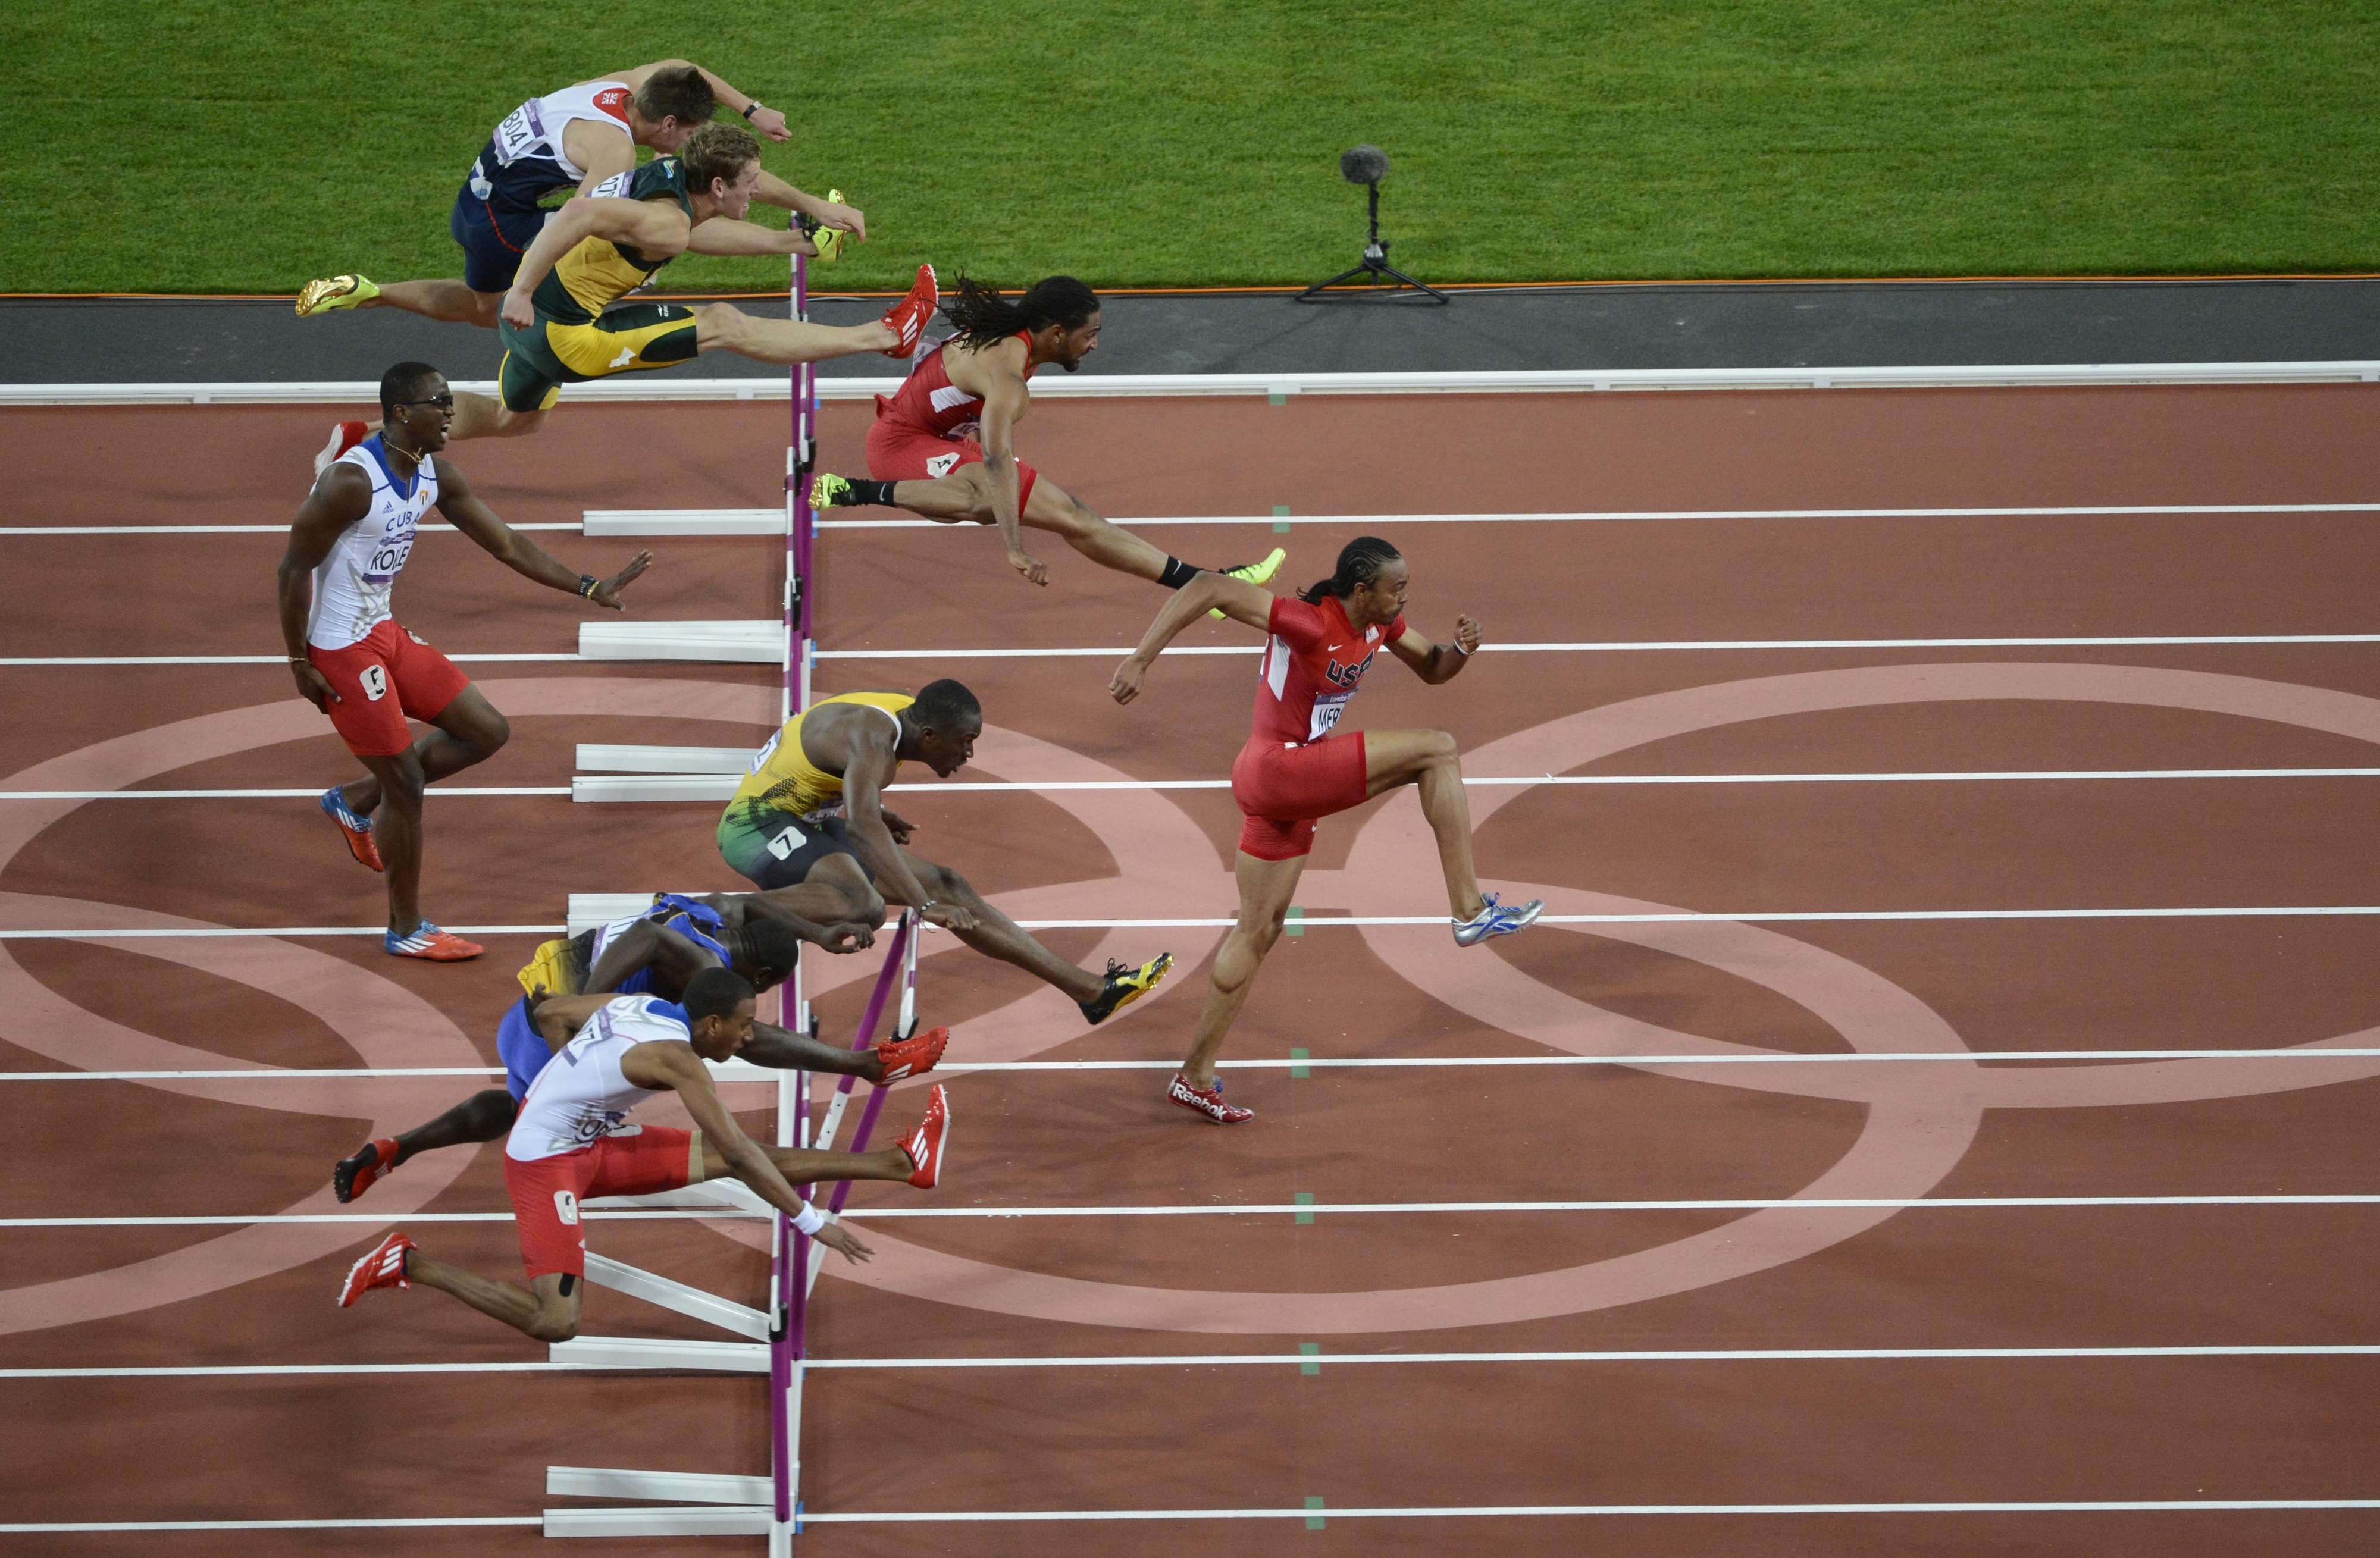 Silver and gold, siiiilver and goooold..: (Richard Mackson-USA TODAY Sports)